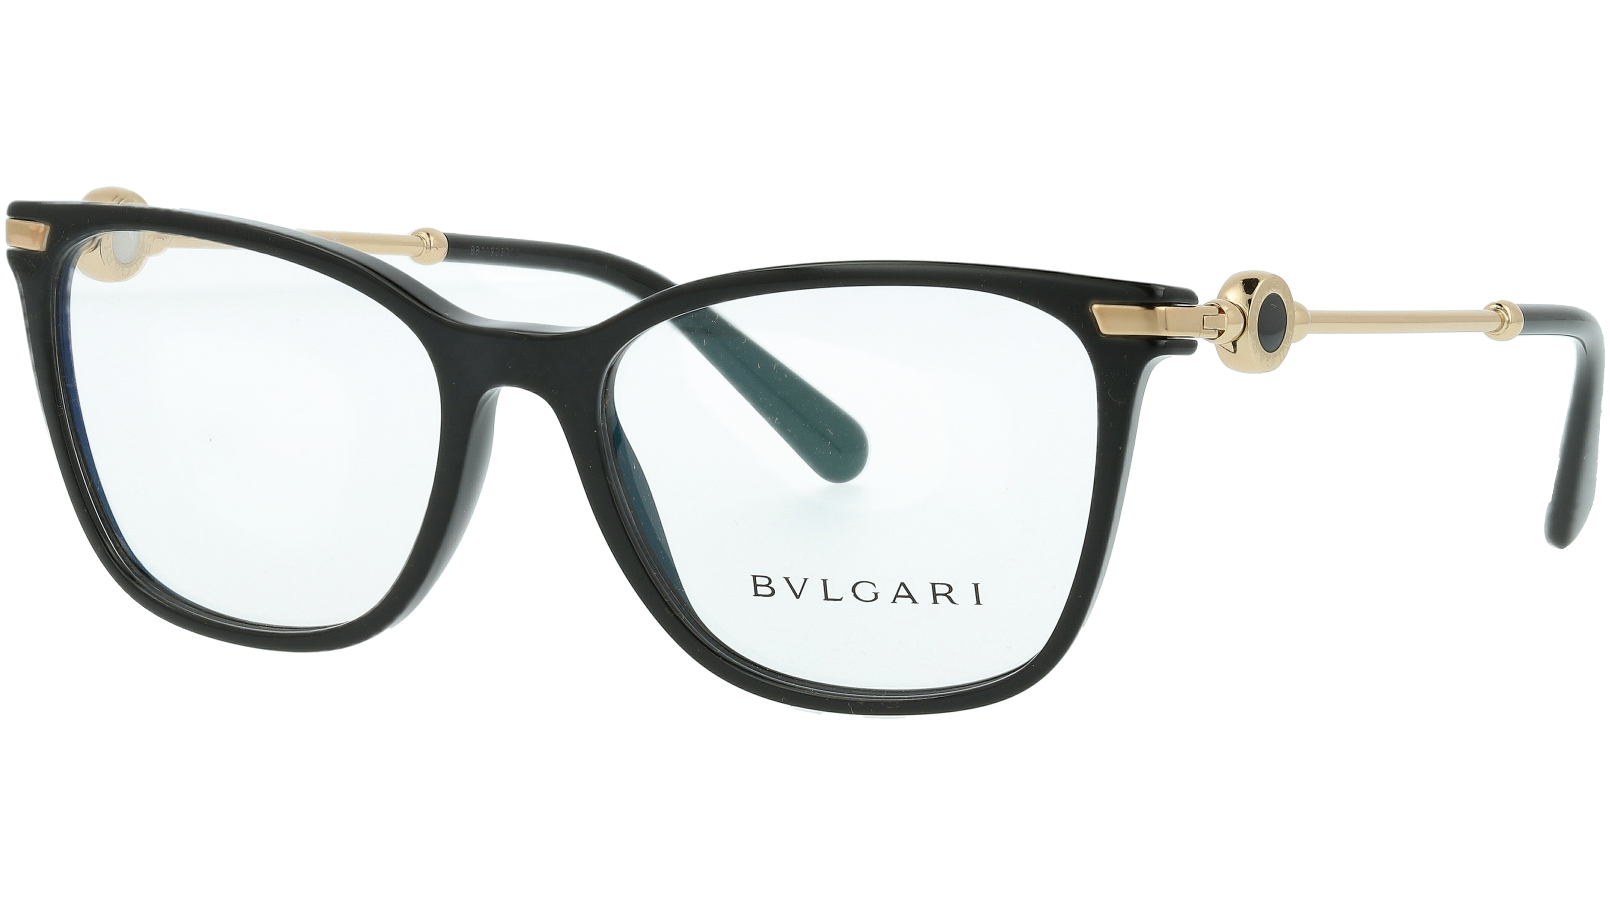 BVLGARI BV4169 501 54 BLACK Glasses